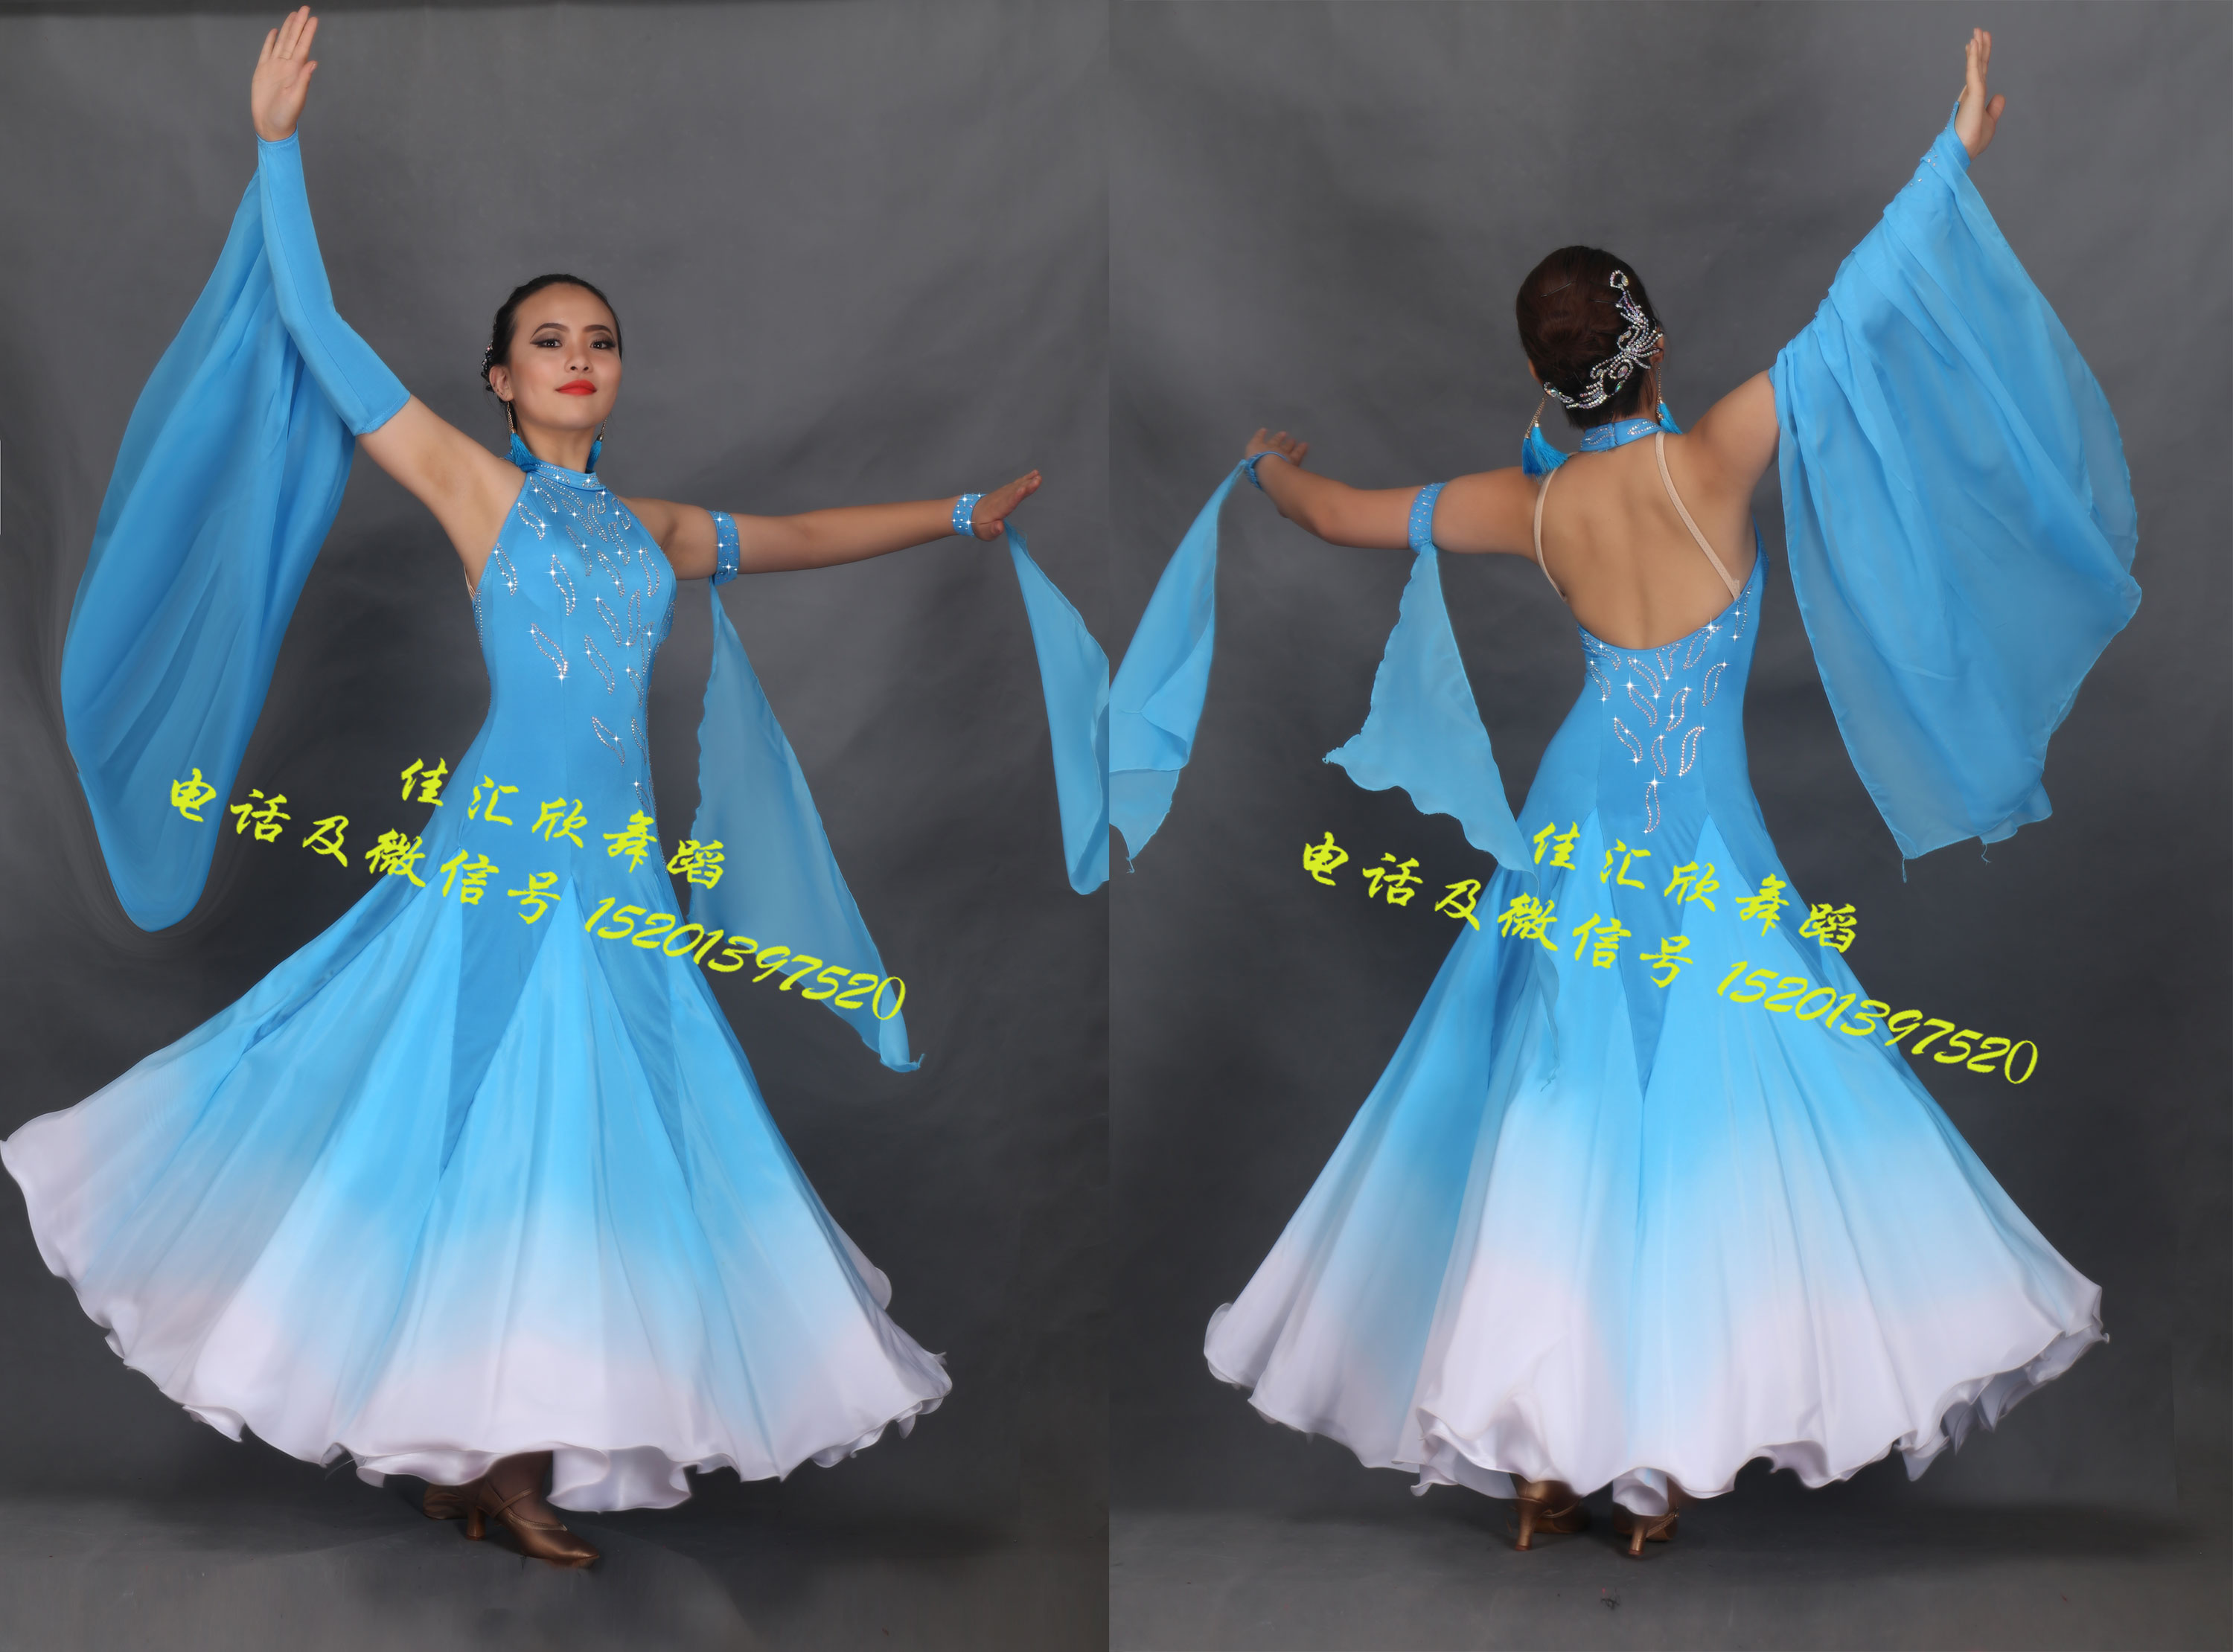 Ballroom Competitiom Dance Dress Uniforms Dance Waltz Blue Color For Women